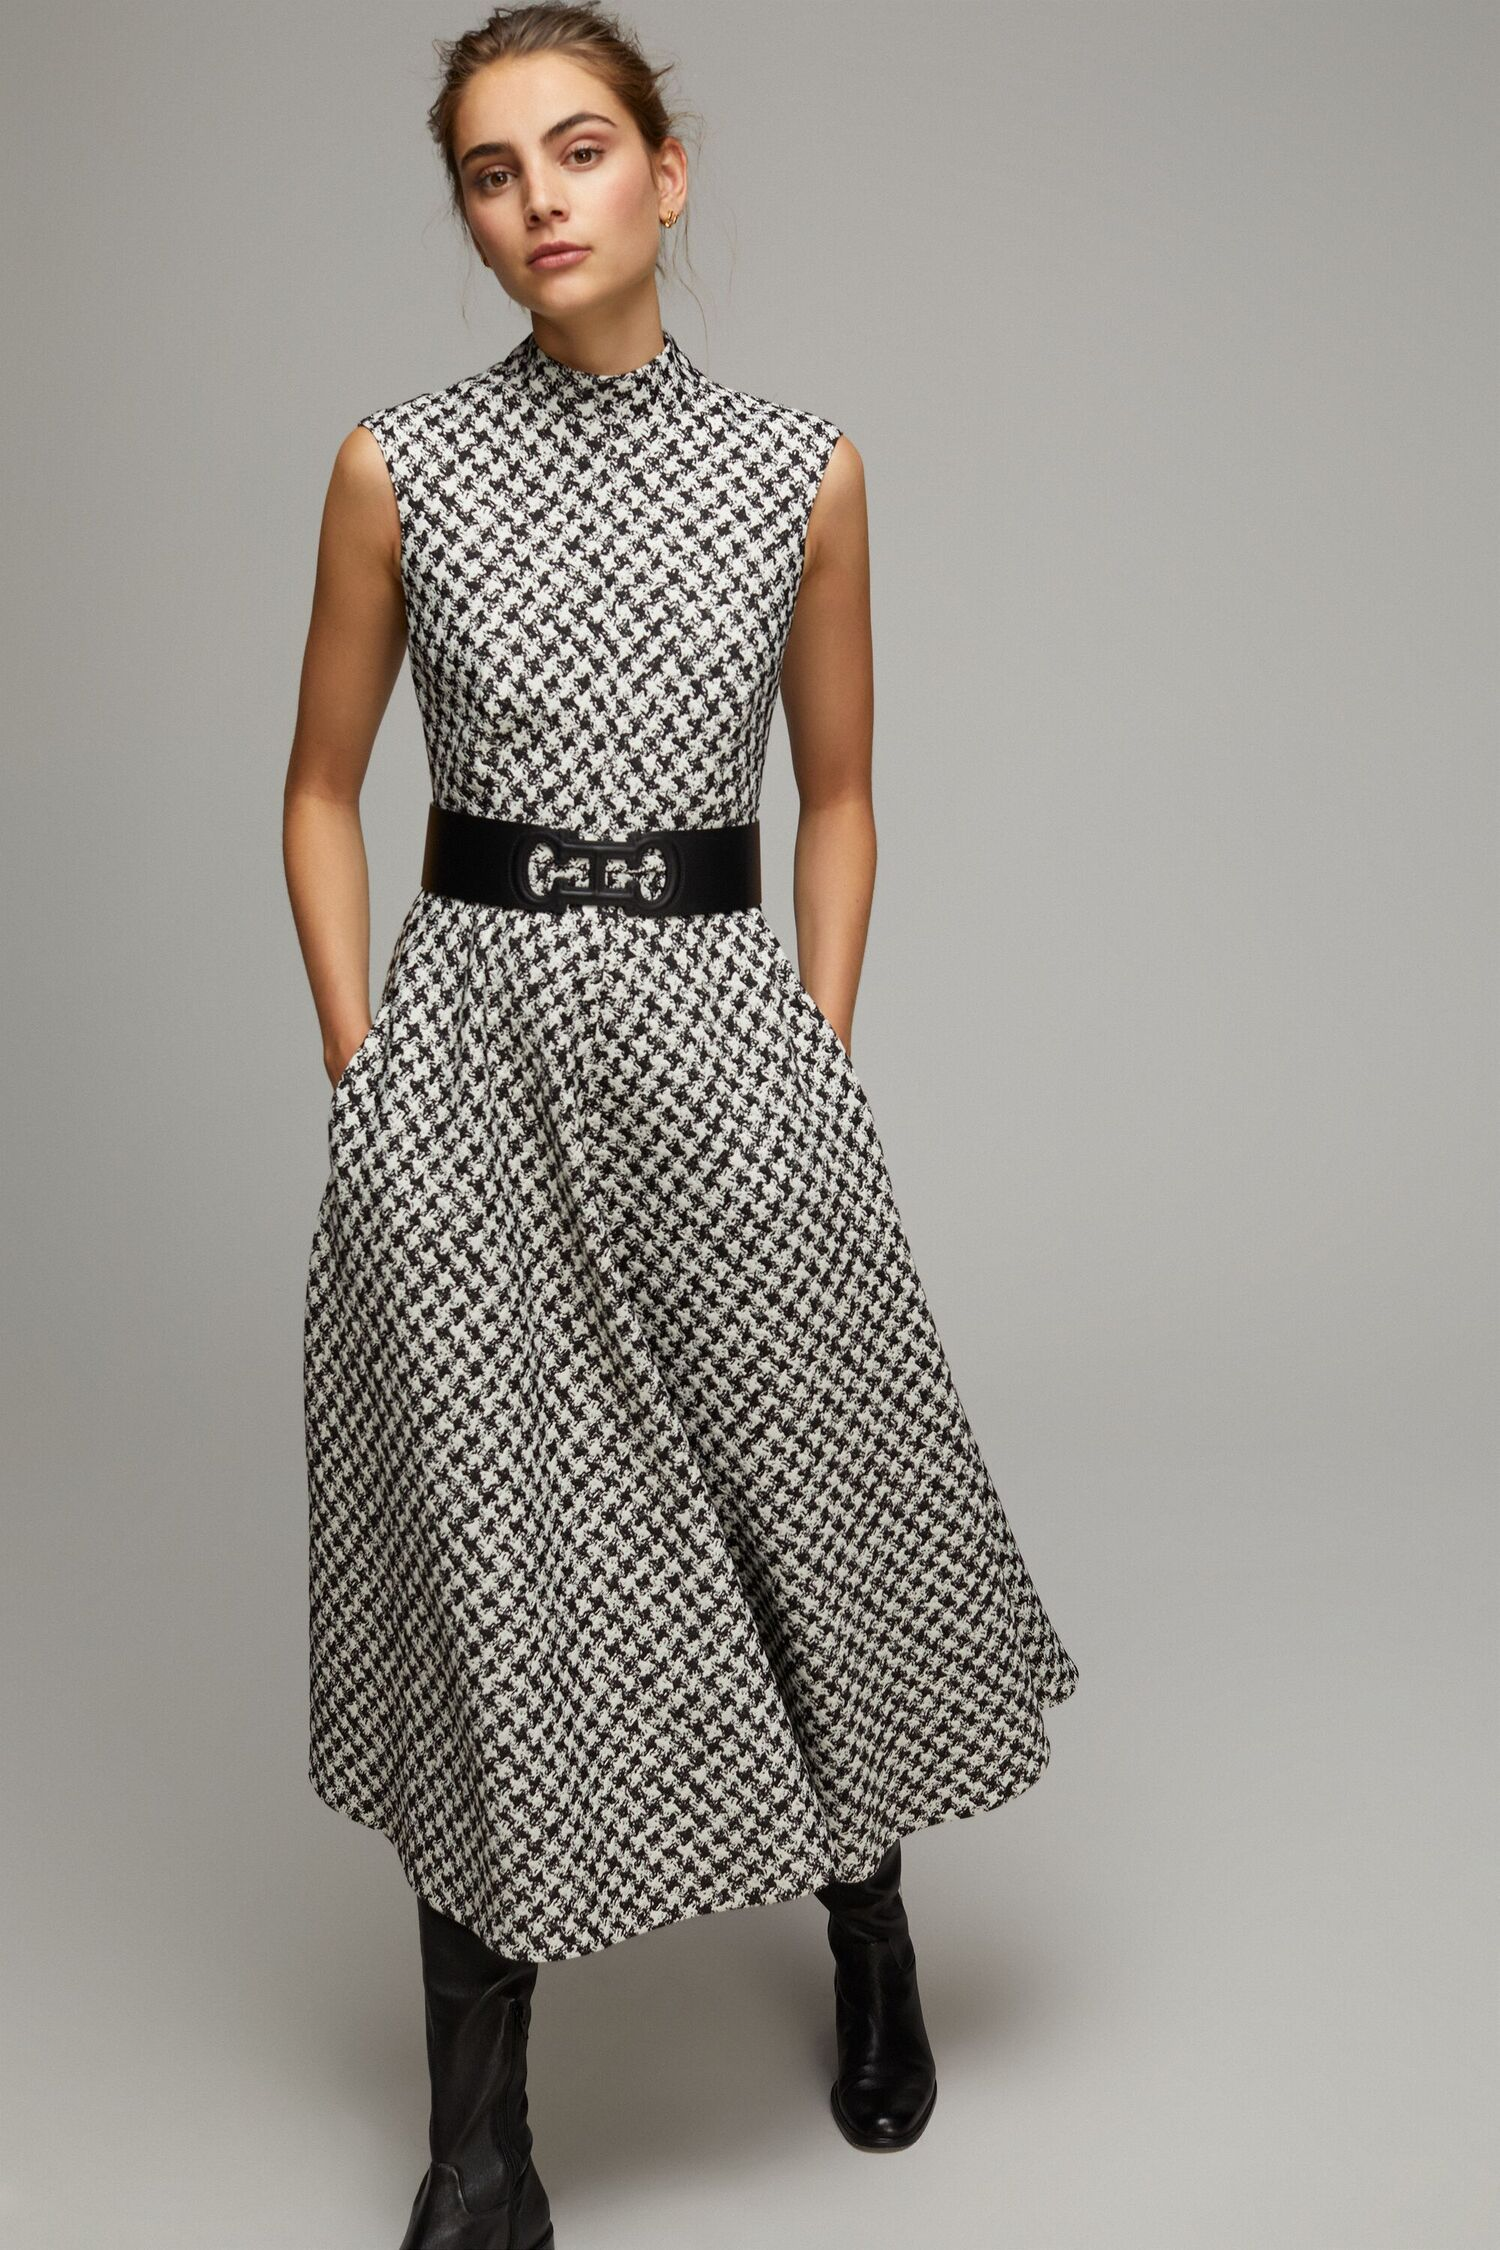 shop carolina herrera clothing